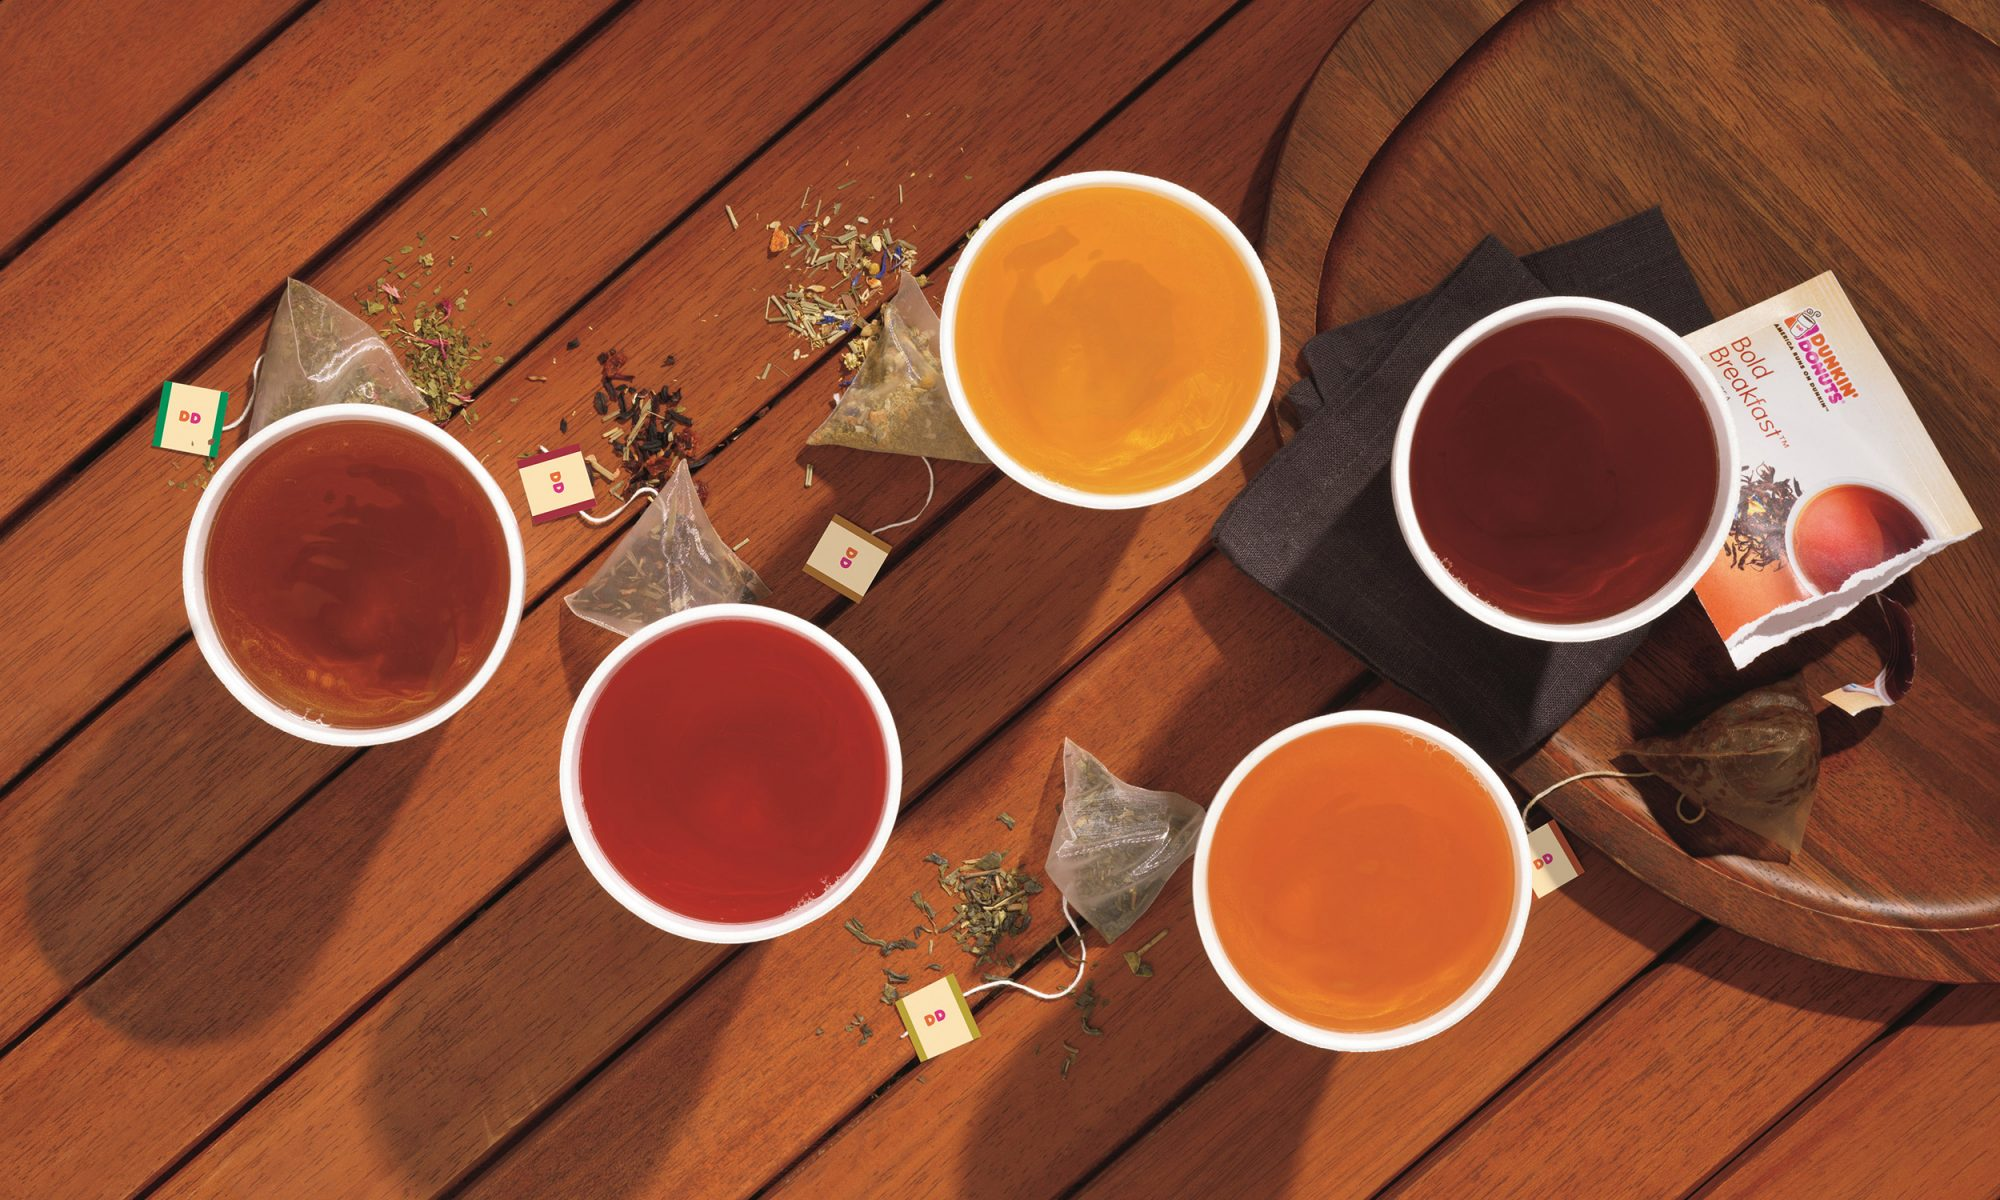 EC: Dunkin' Donuts Launches Premium Hot Teas to Woo Young People